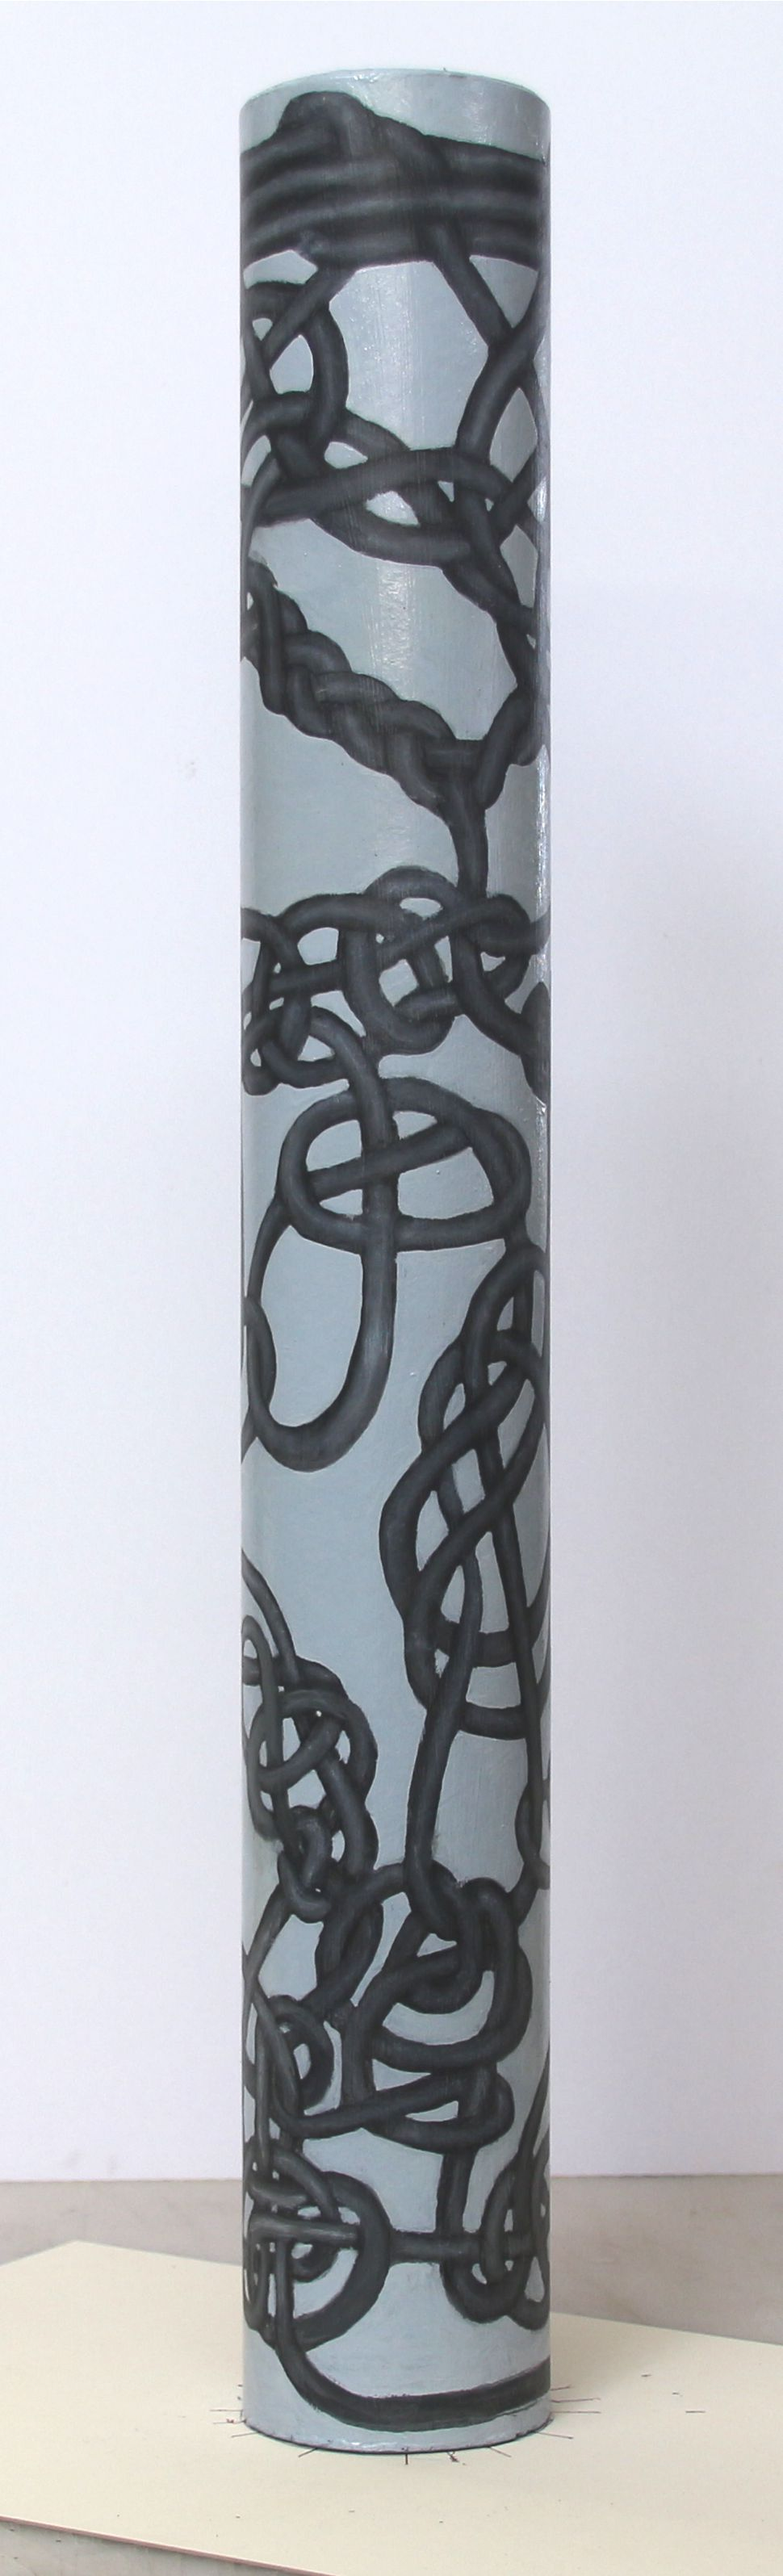 Jim Banks,  Tube knot #1,   Charcoal and oil on cardboard tube, 24x3